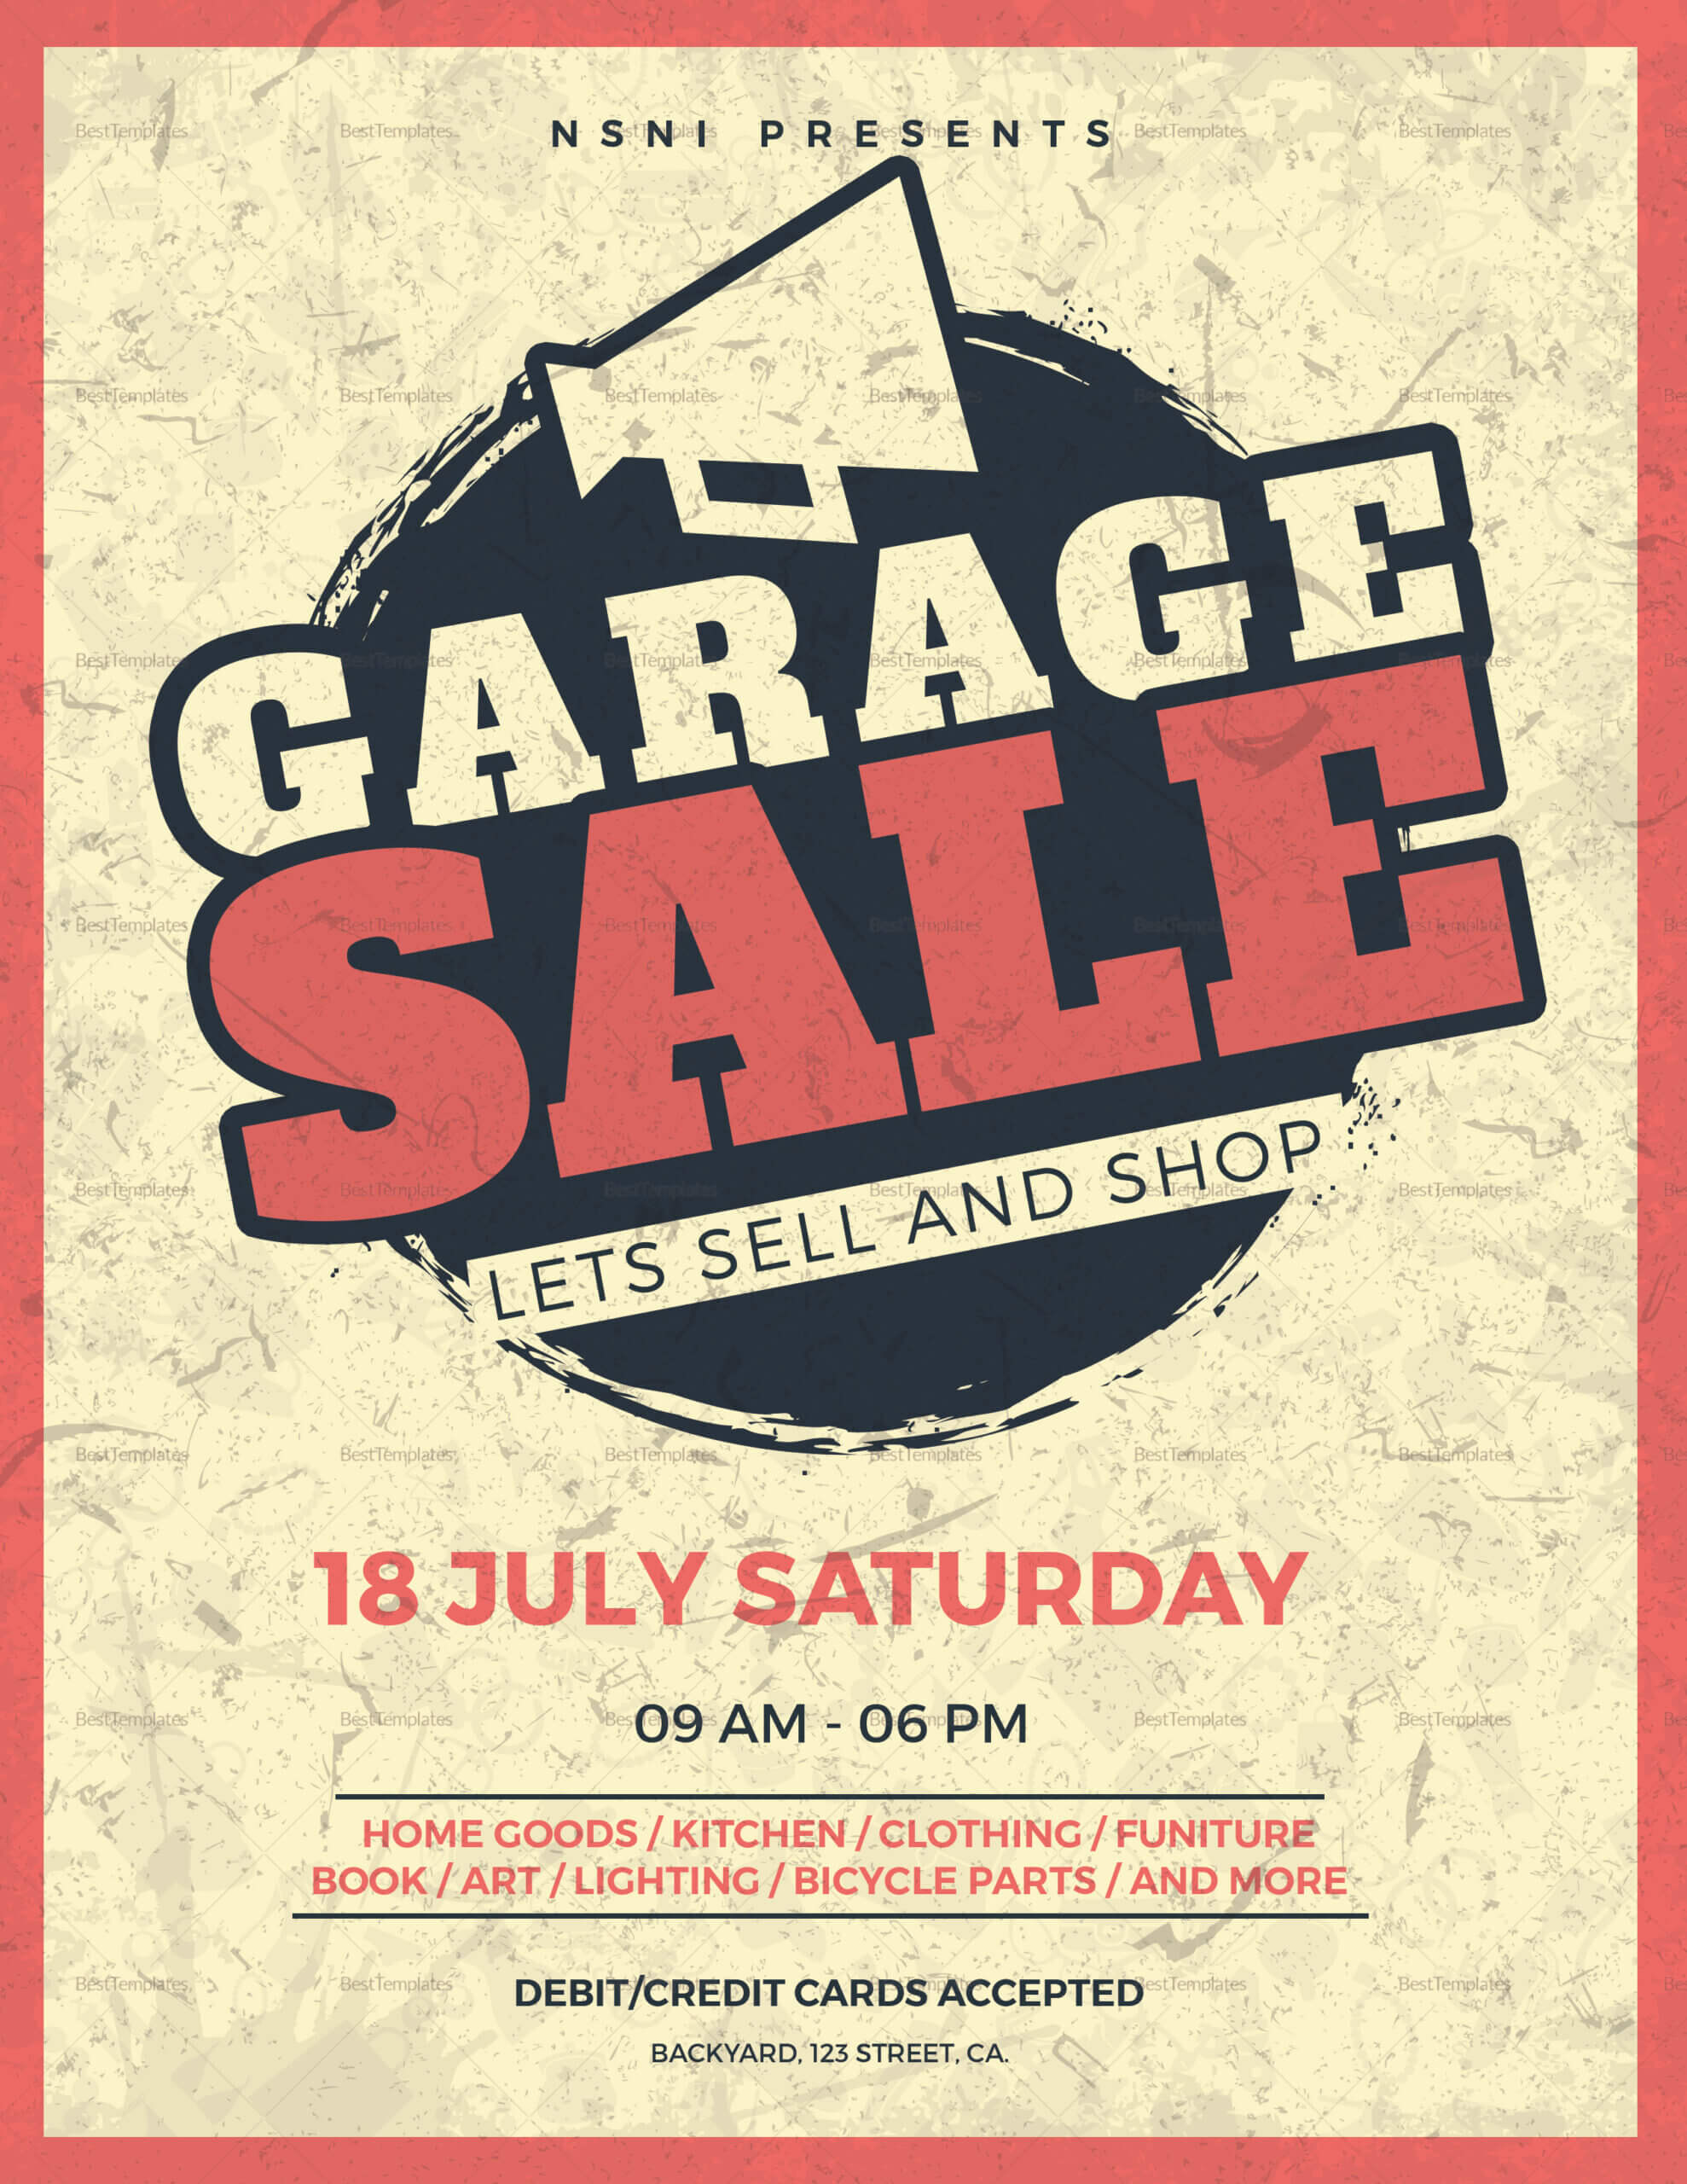 Vintage Garage Sale Flyer Template Pertaining To Garage Sale Flyer Template Word